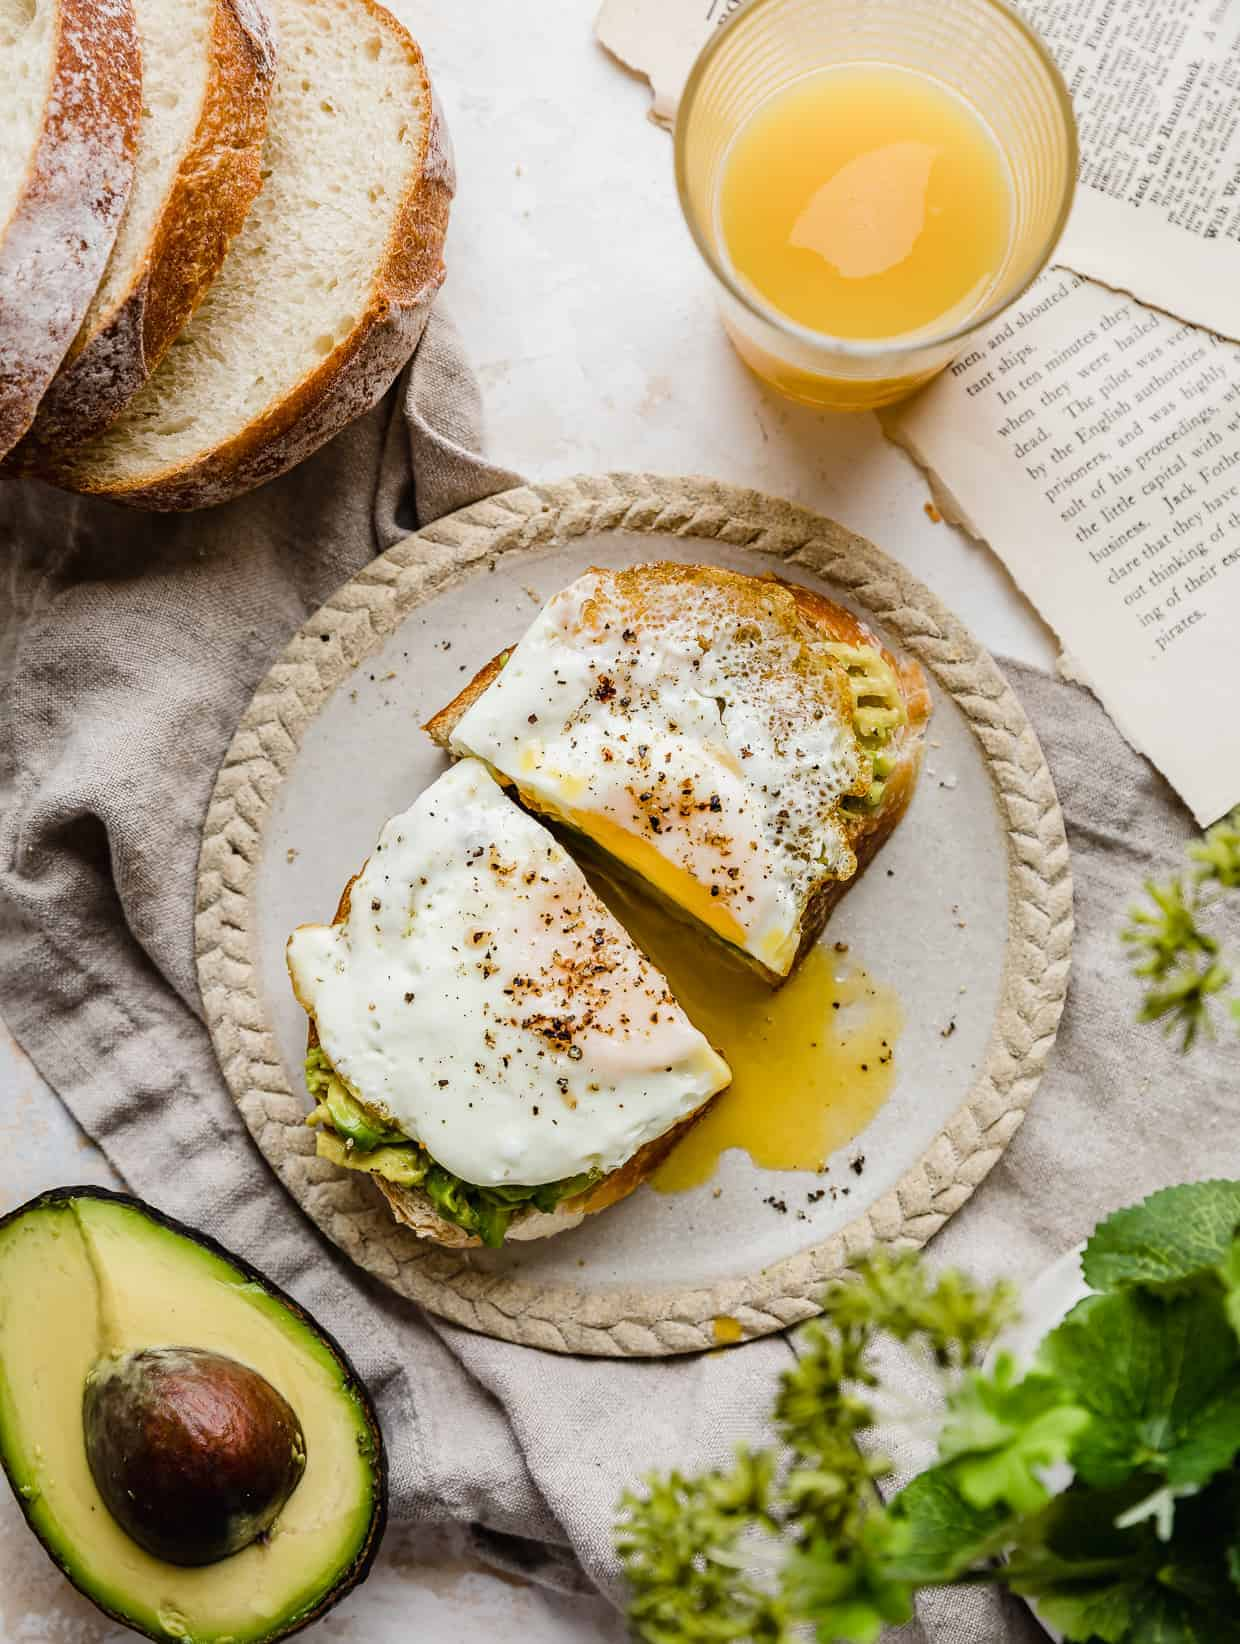 Avocado and Egg Toast cut in half on a plate.